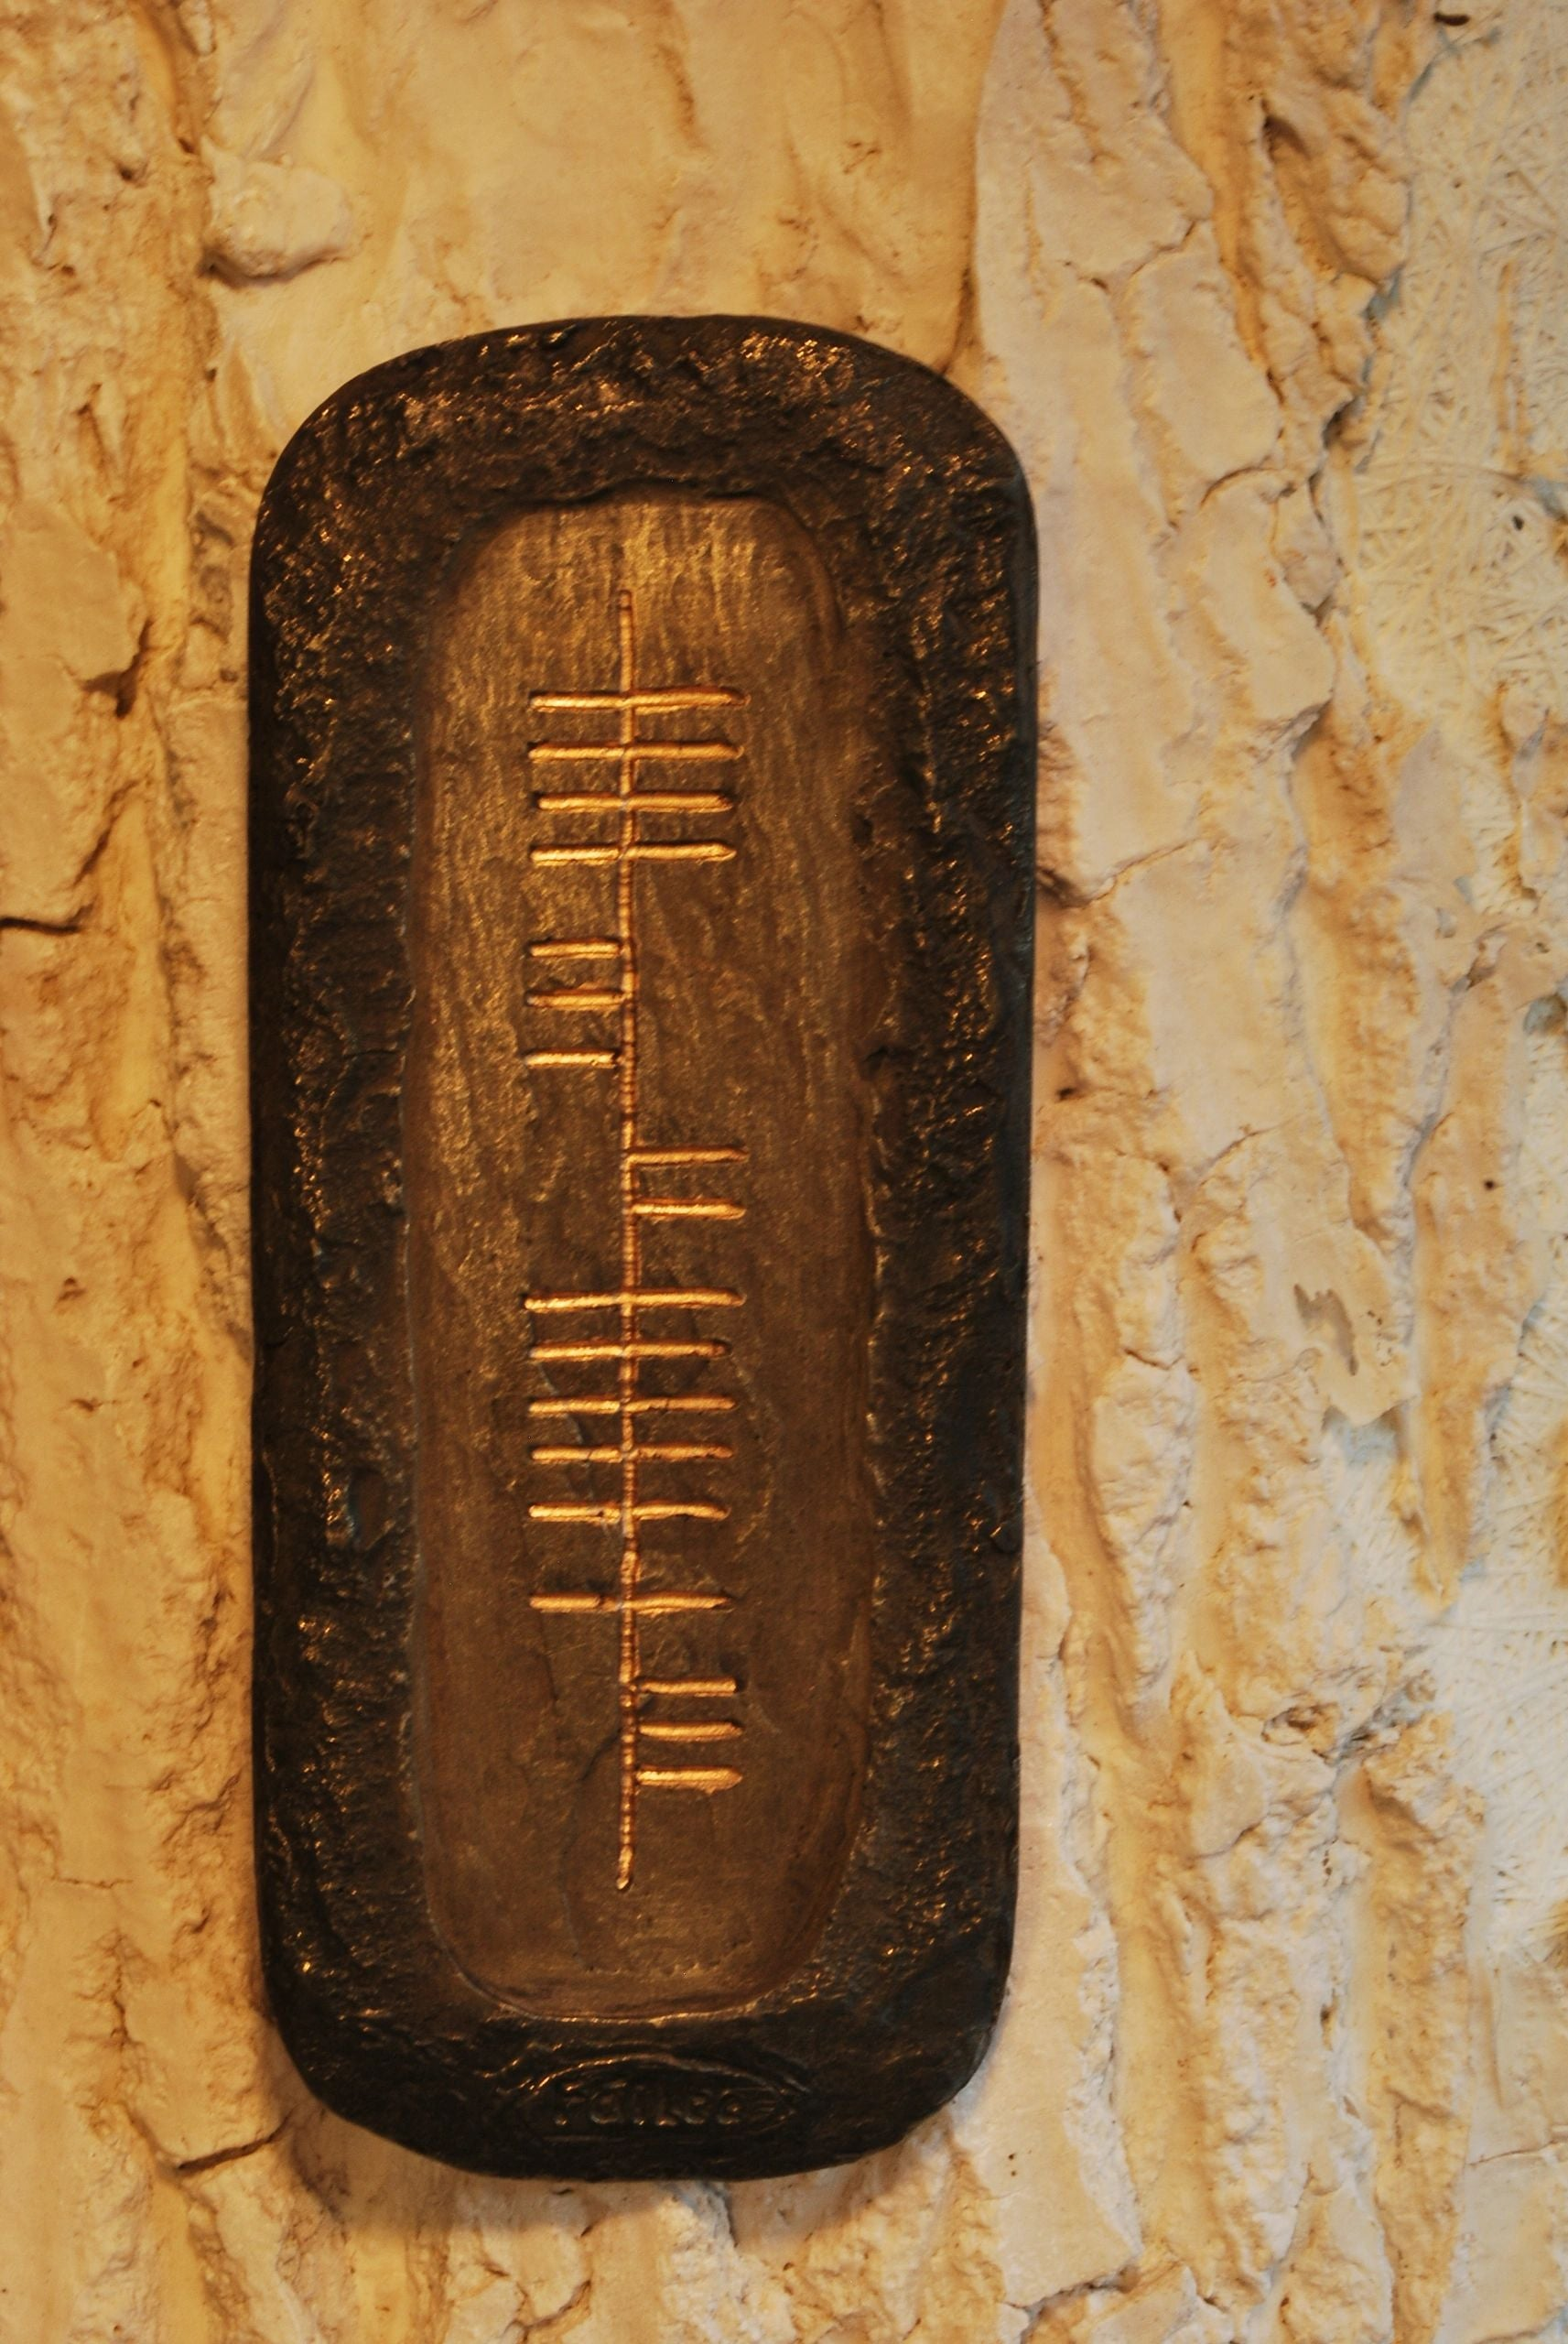 OGOWNA OGHAM WALL PLAQUE, FAILTE WHICH MEANS WELCOME IN IRISH - TheIrishShop